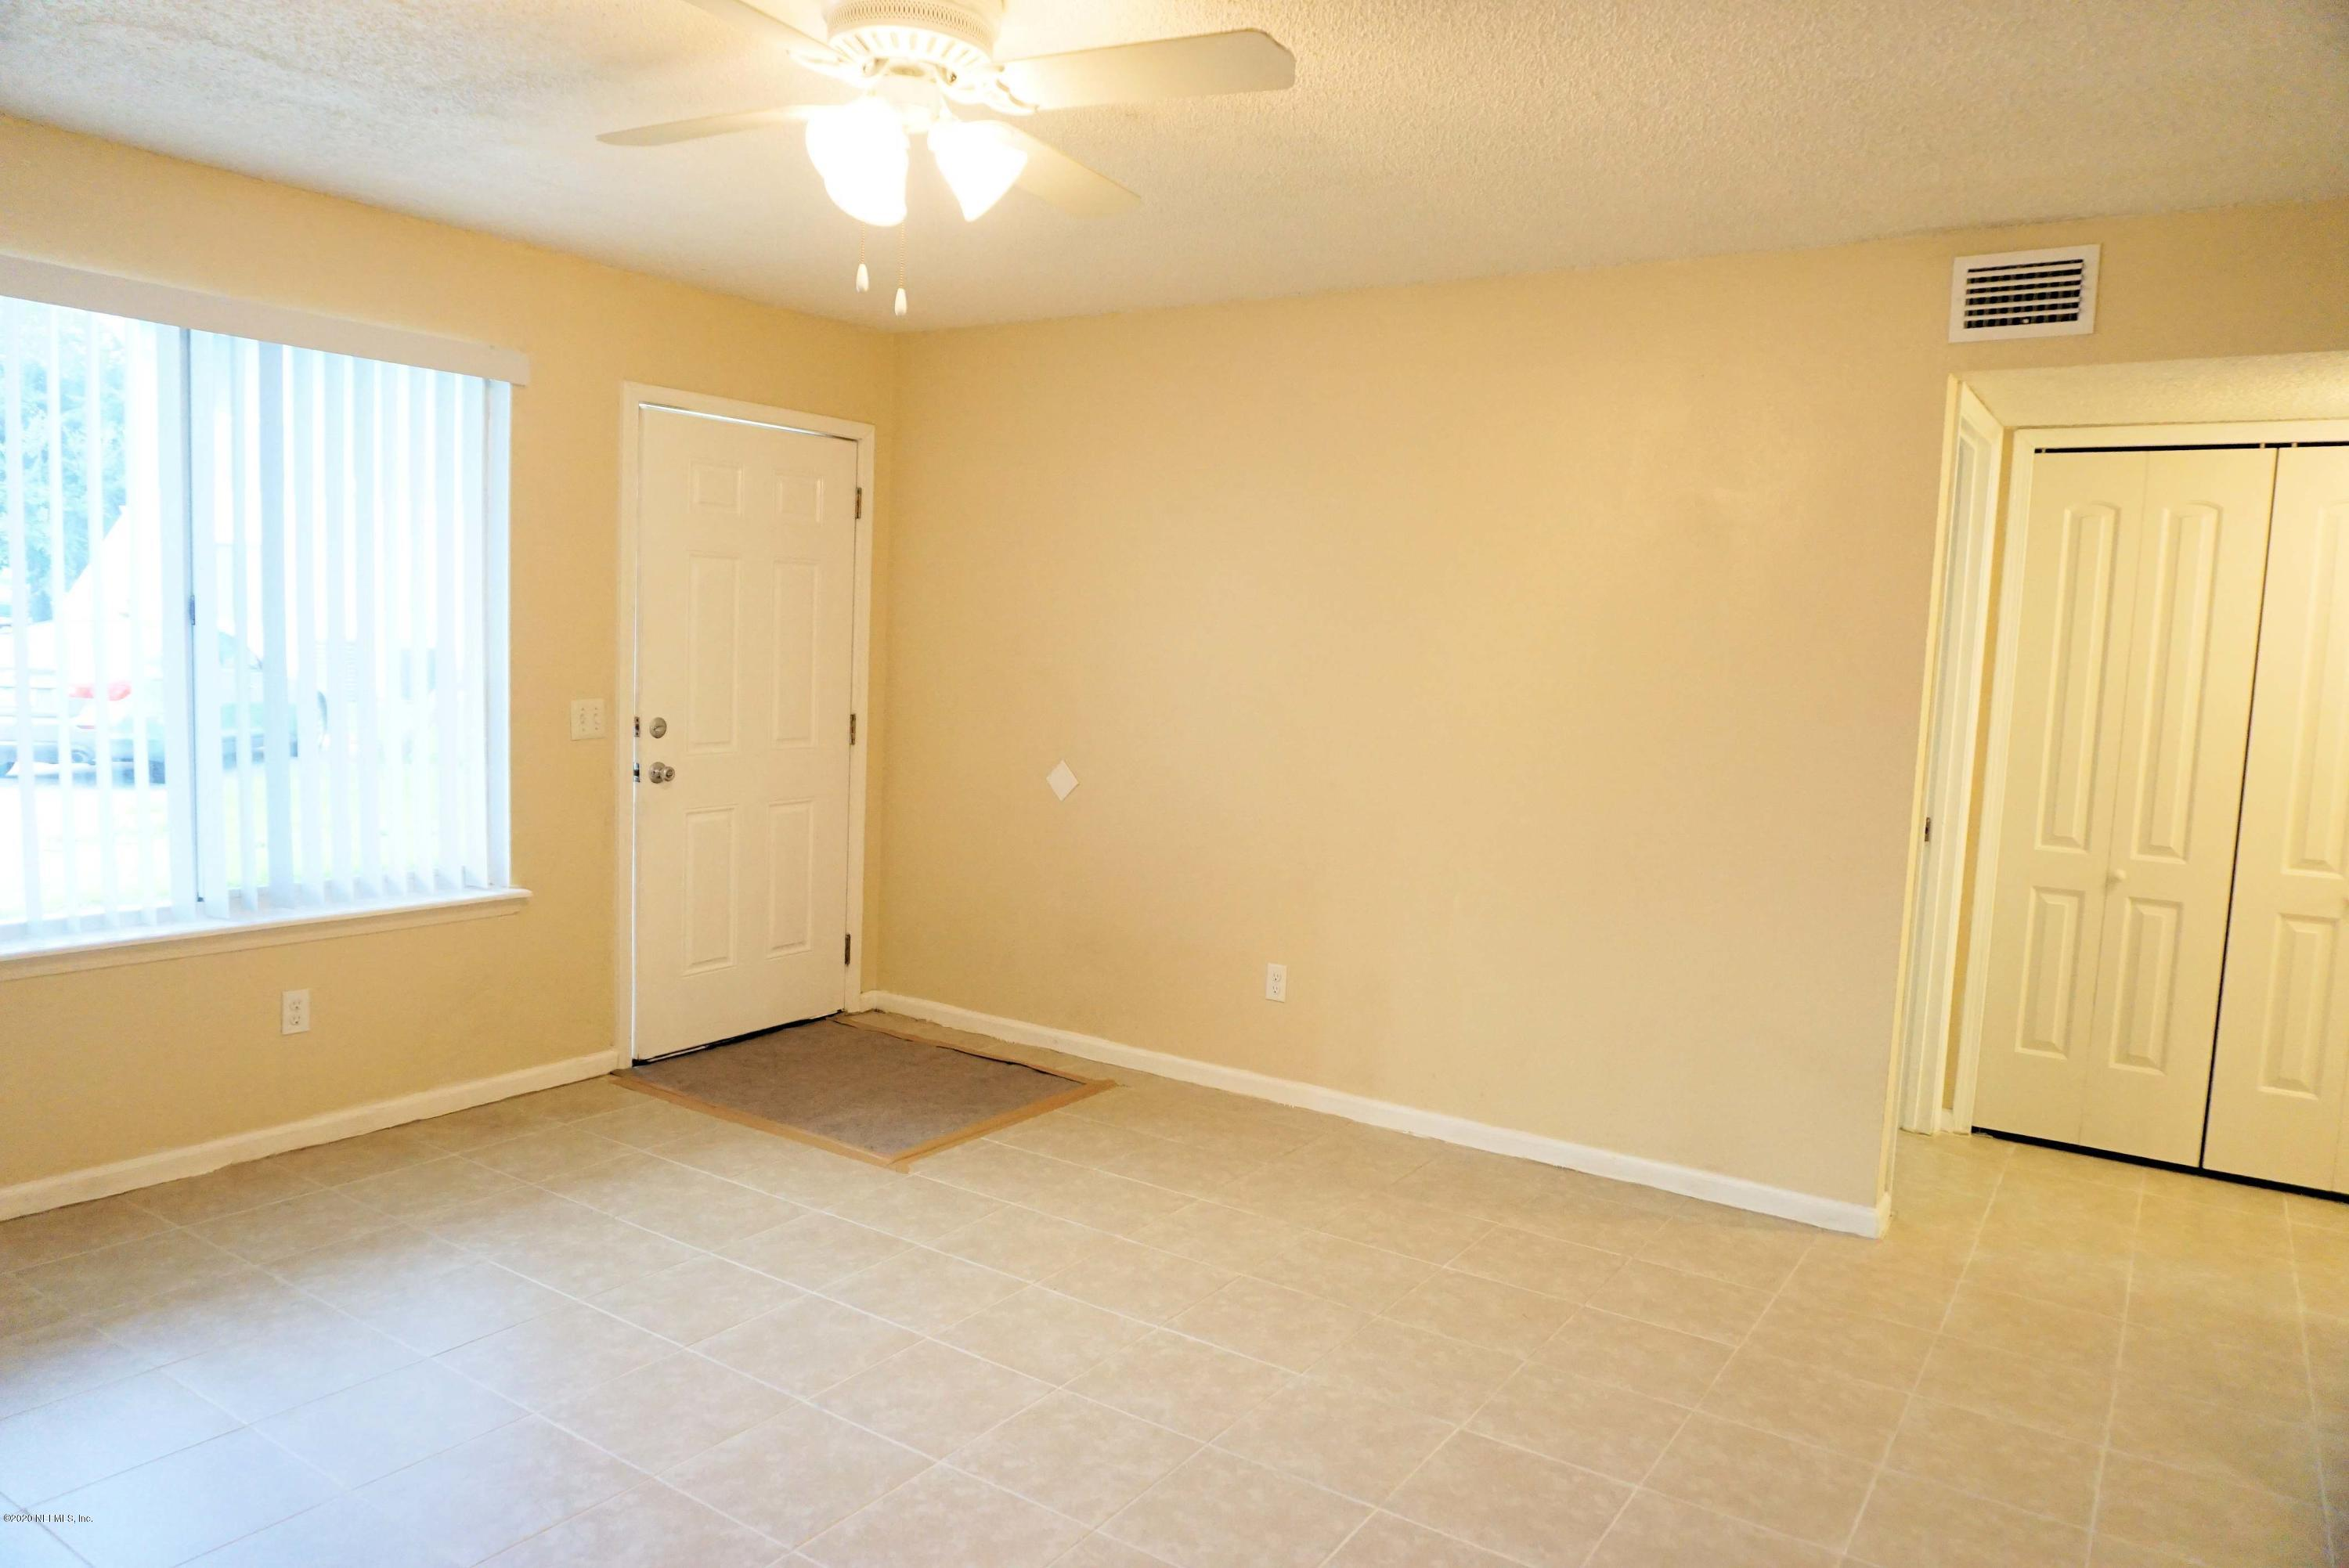 791 ASSISI, JACKSONVILLE, FLORIDA 32233, 2 Bedrooms Bedrooms, ,1 BathroomBathrooms,Rental,For Rent,ASSISI,1080185